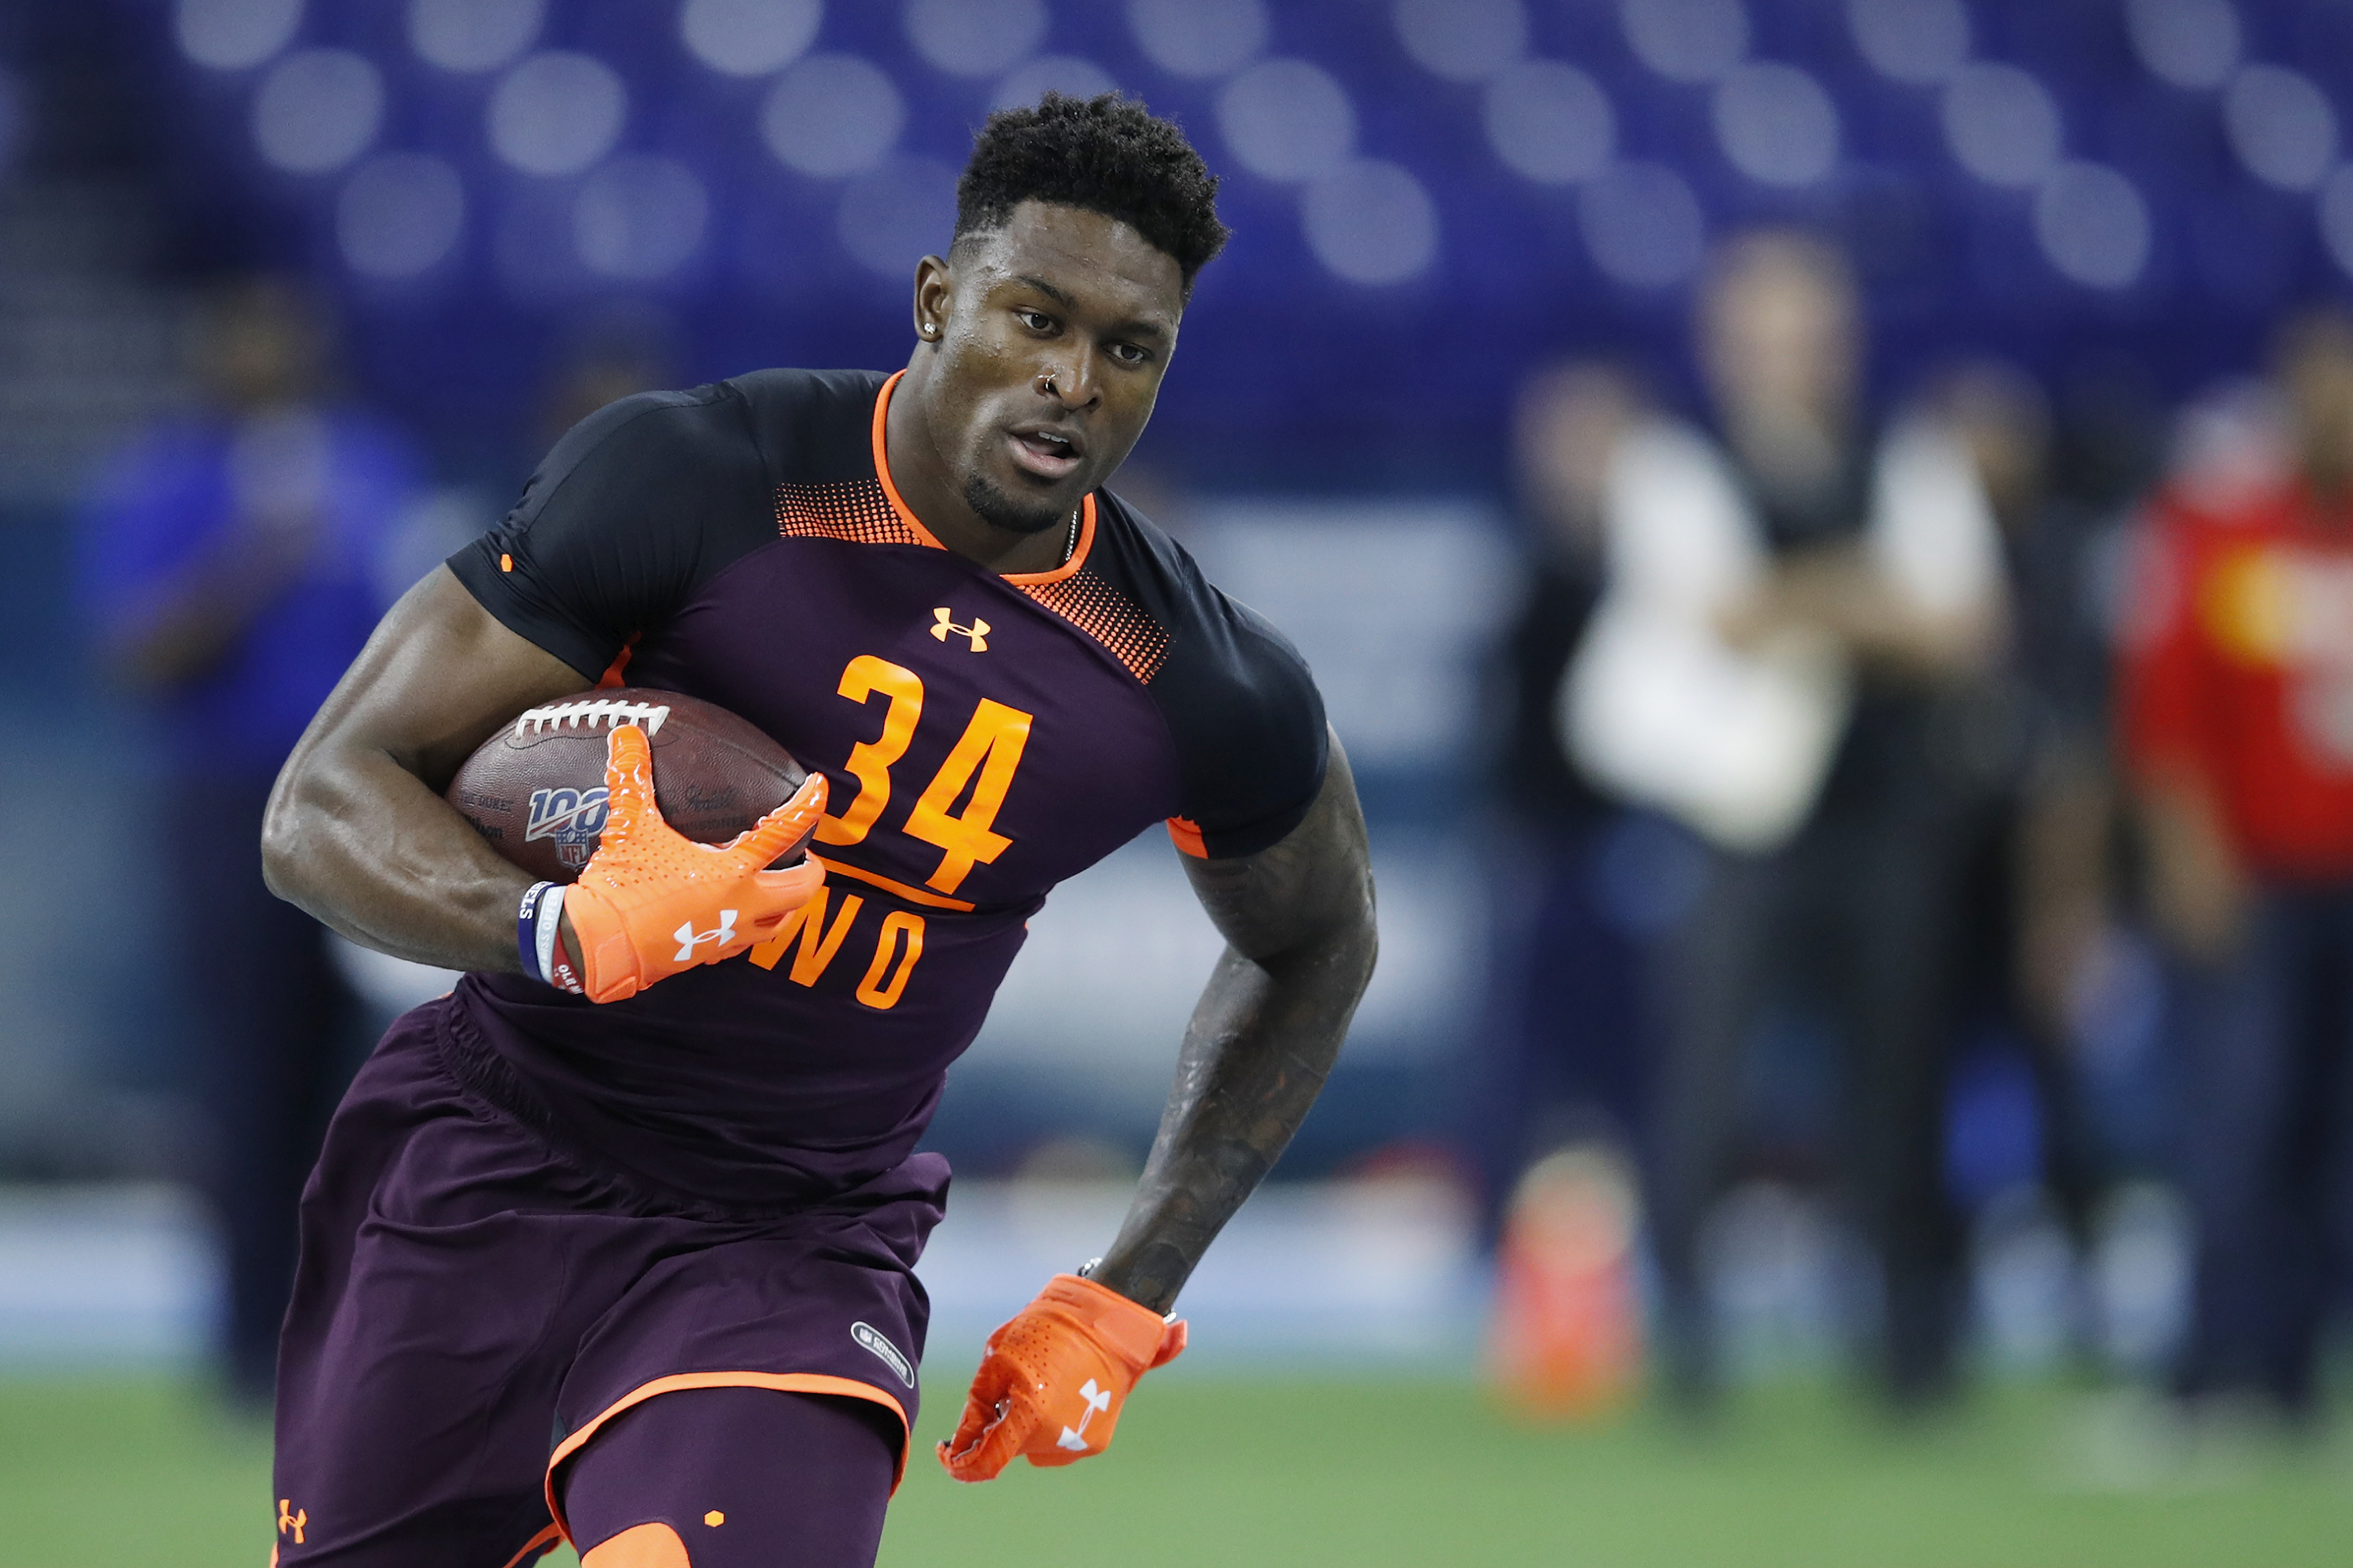 Clevelandbrowns D K Metcalf Would Like To Play With Baker Mayfield